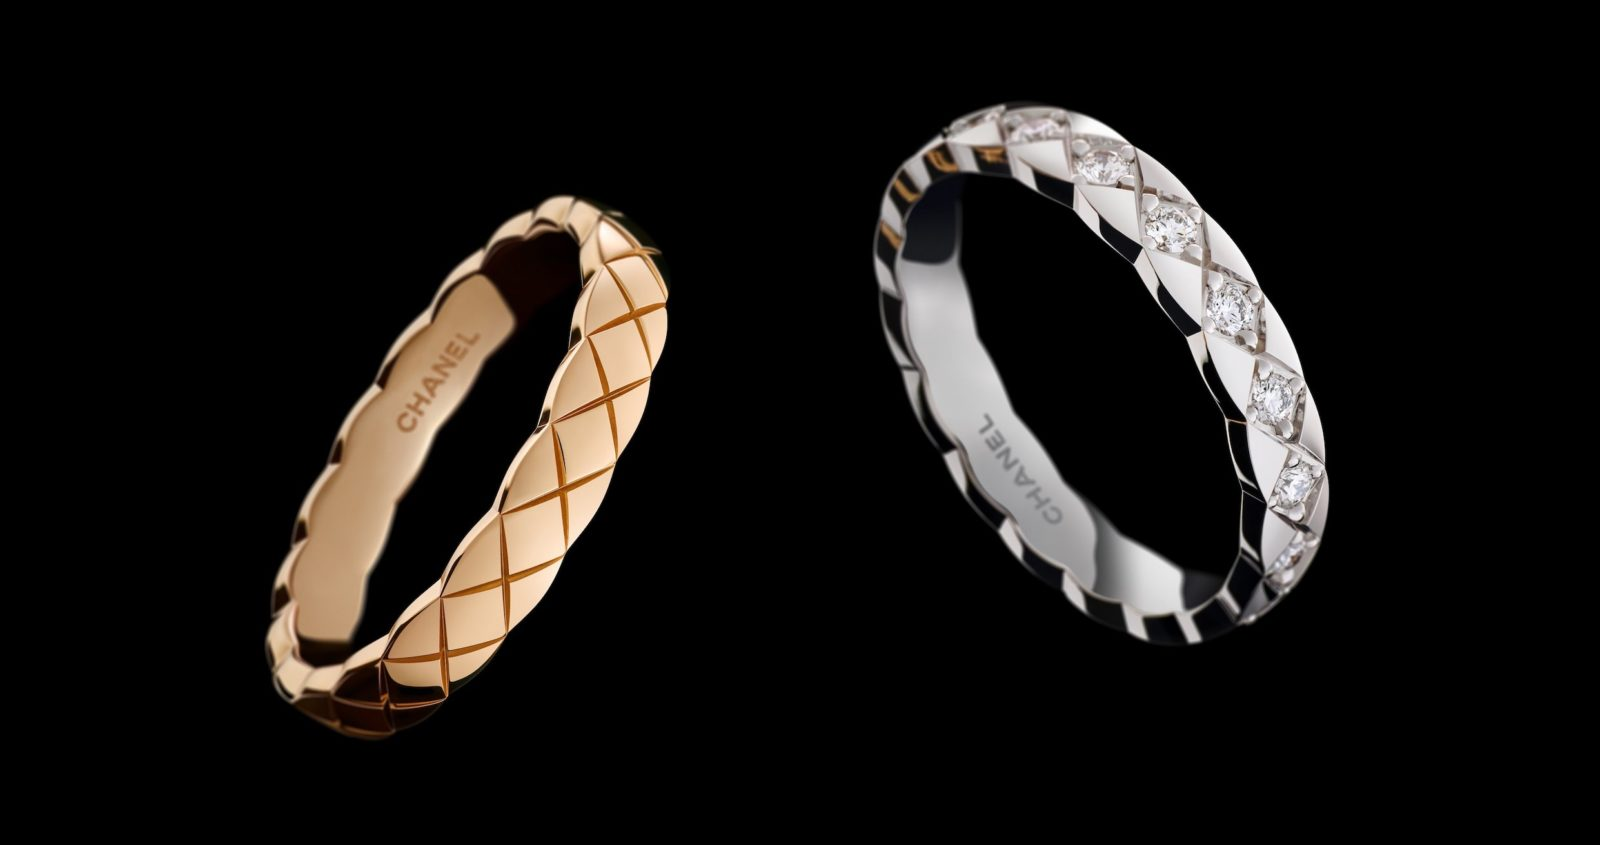 Chanel's Coco Crush jewellery collection goes mini